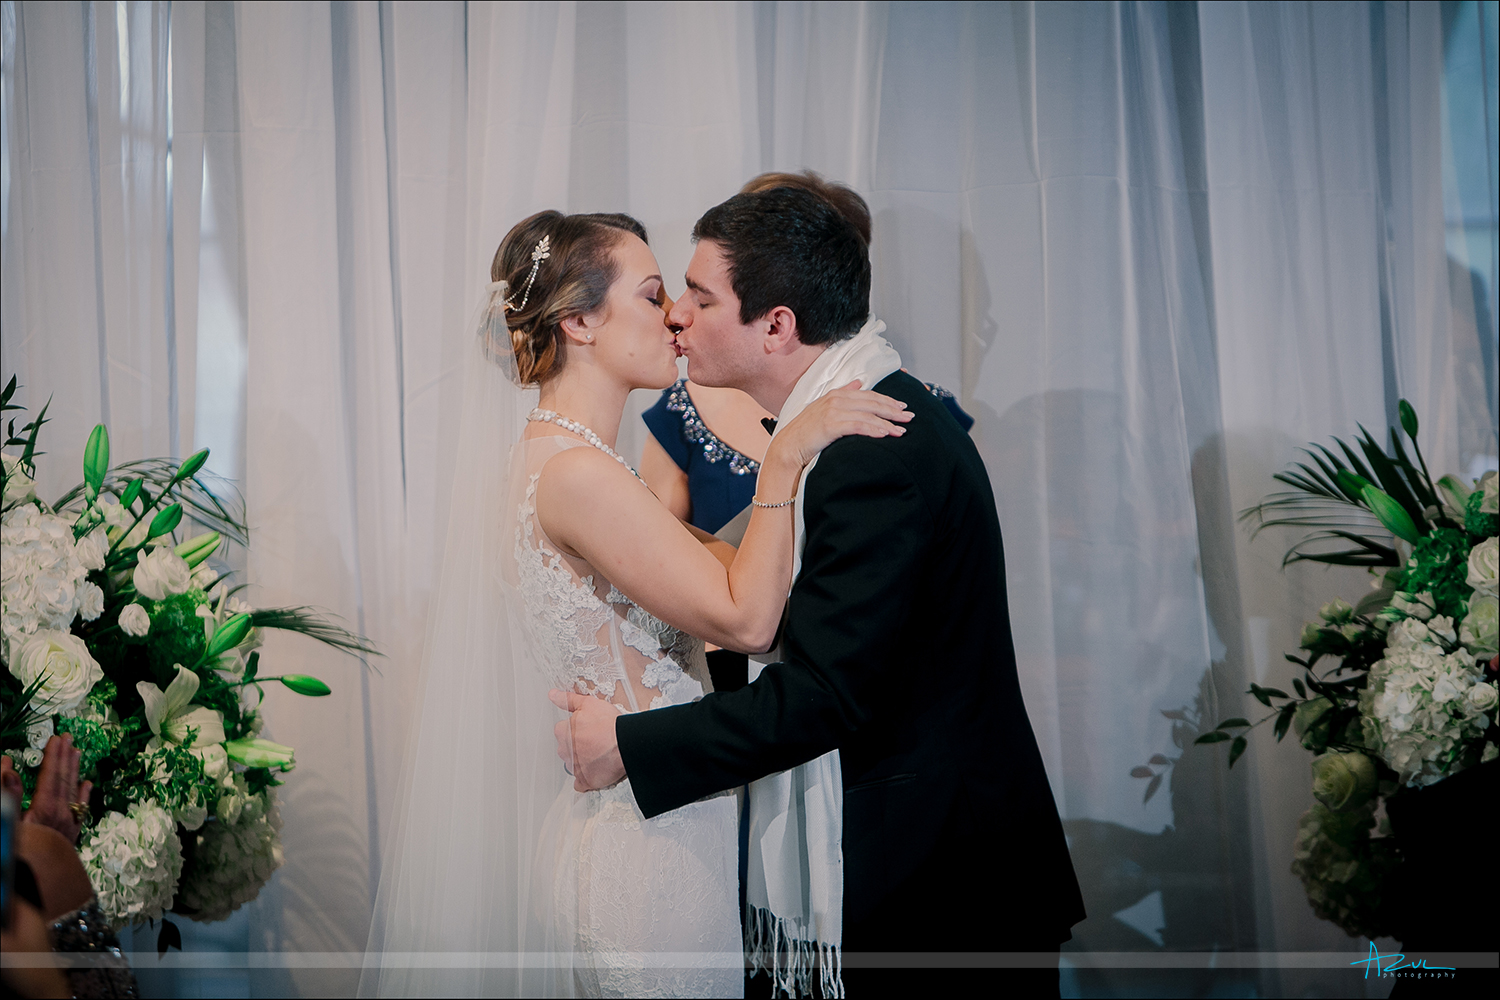 Wedding ceremony kiss of the bride and groom at 21c Museum & Hotel